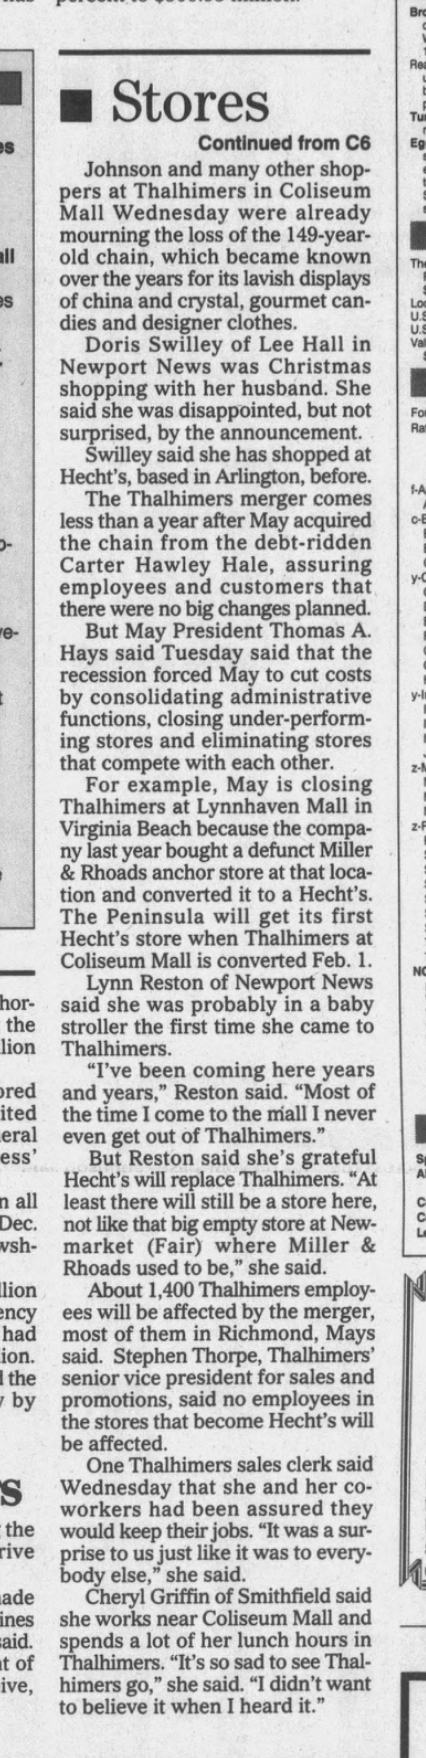 Thalhimers Becomes Hechts, Coliseum Mall, 11/14/1991